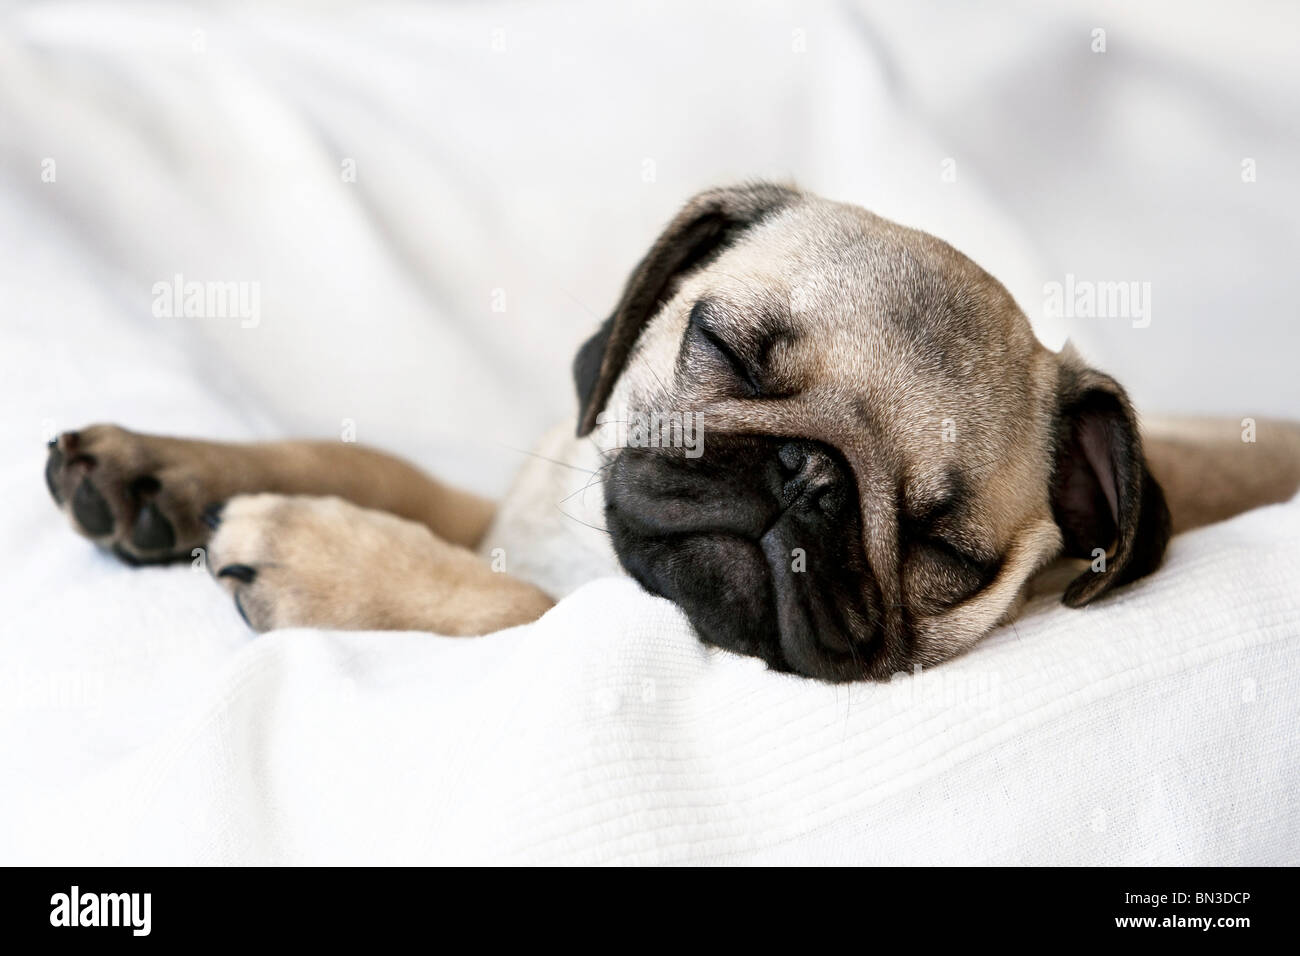 Puppy, Pug, sleeping on pillow - Stock Image